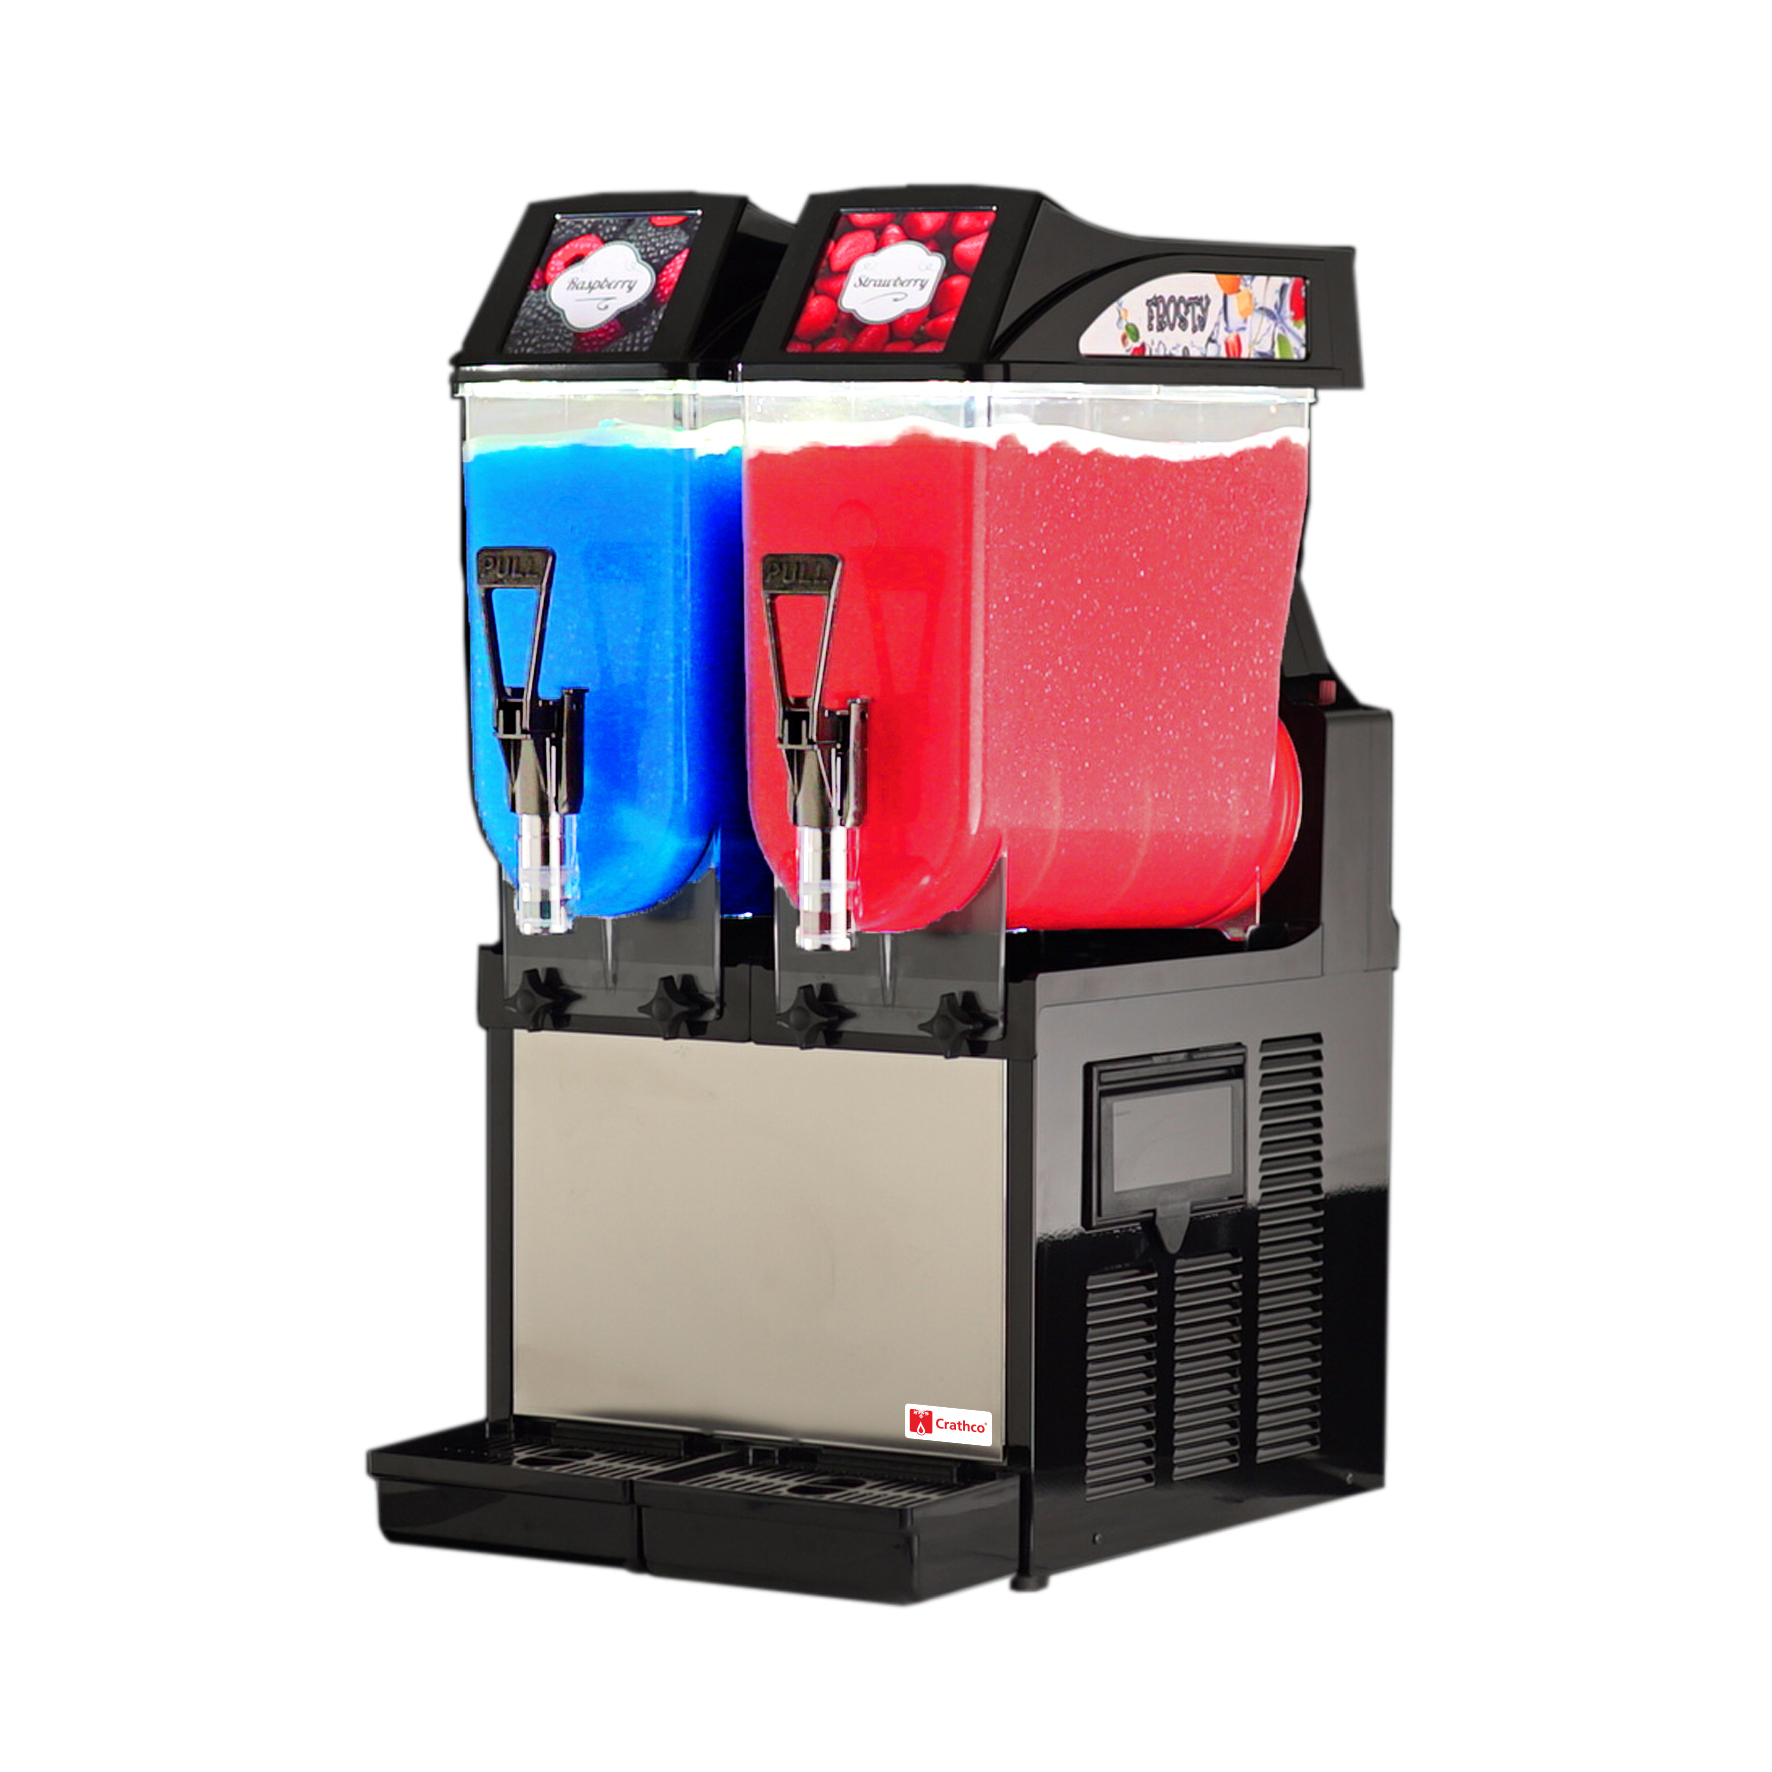 Grindmaster-Cecilware FROSTY 2 frozen drink machine, non-carbonated, bowl type